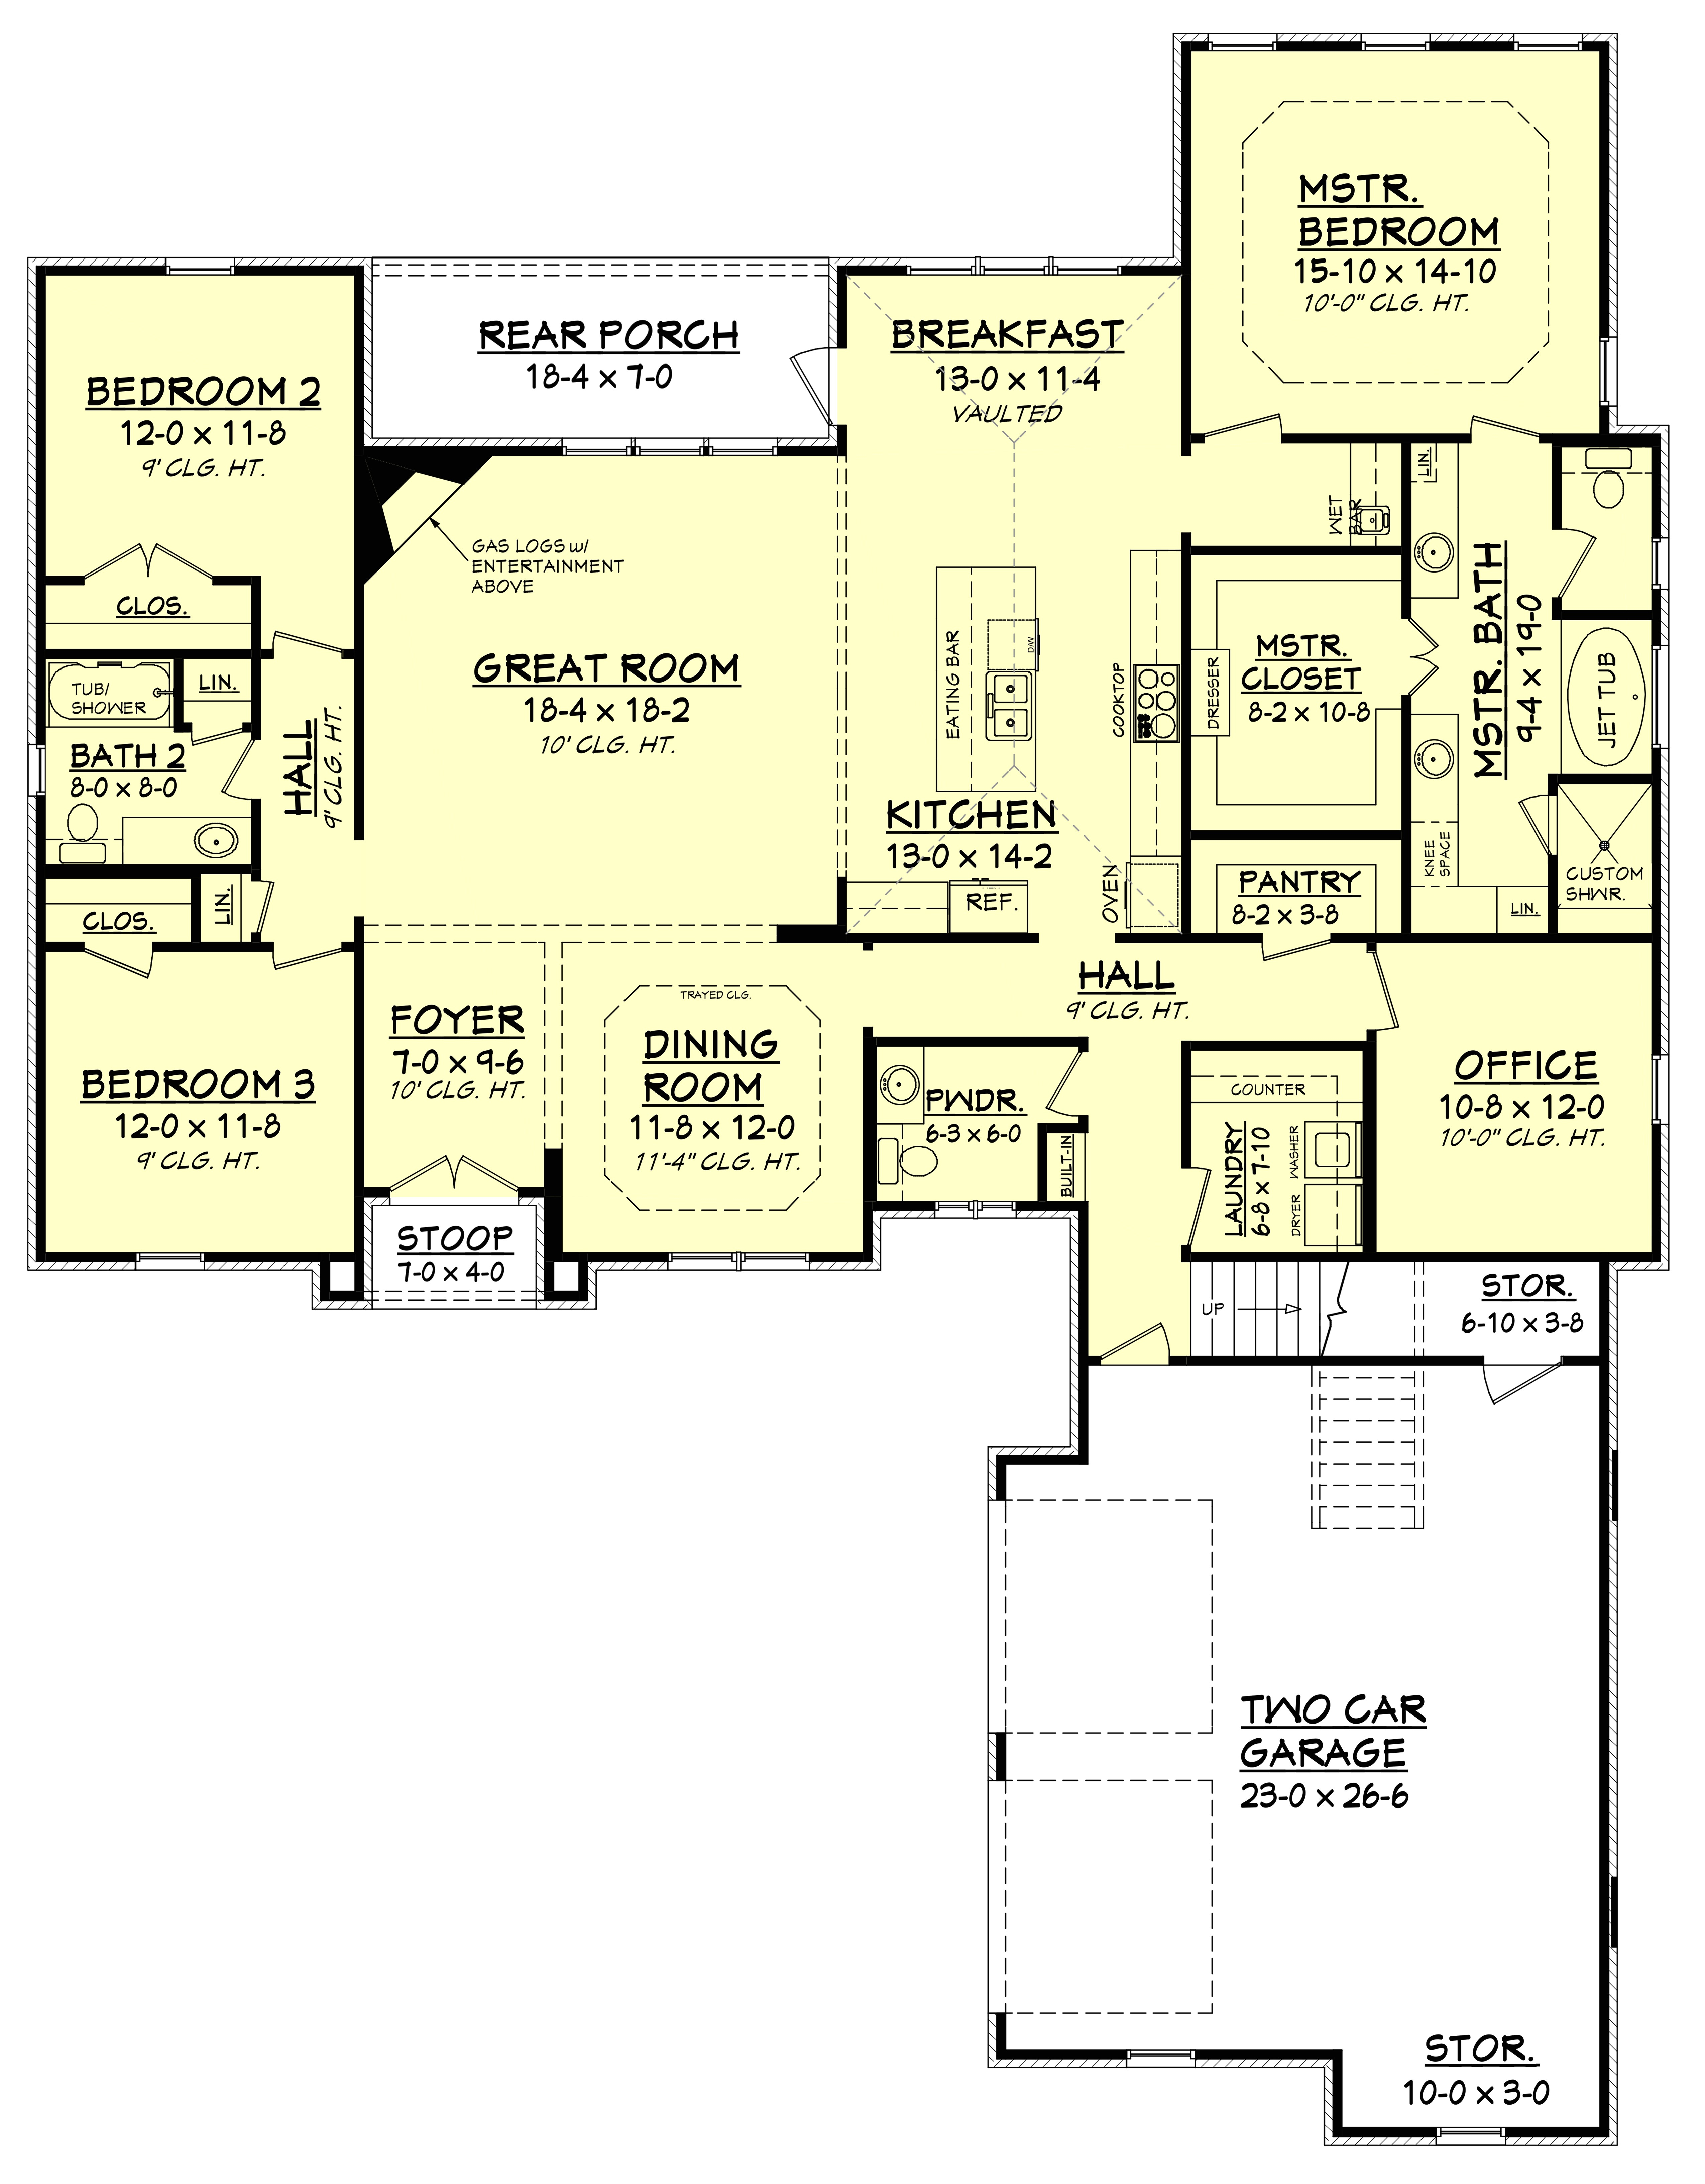 1150 Sq Ft House Plans Traditional House Plan 142 1150 3 Bedrm 2405 Sq Ft Home